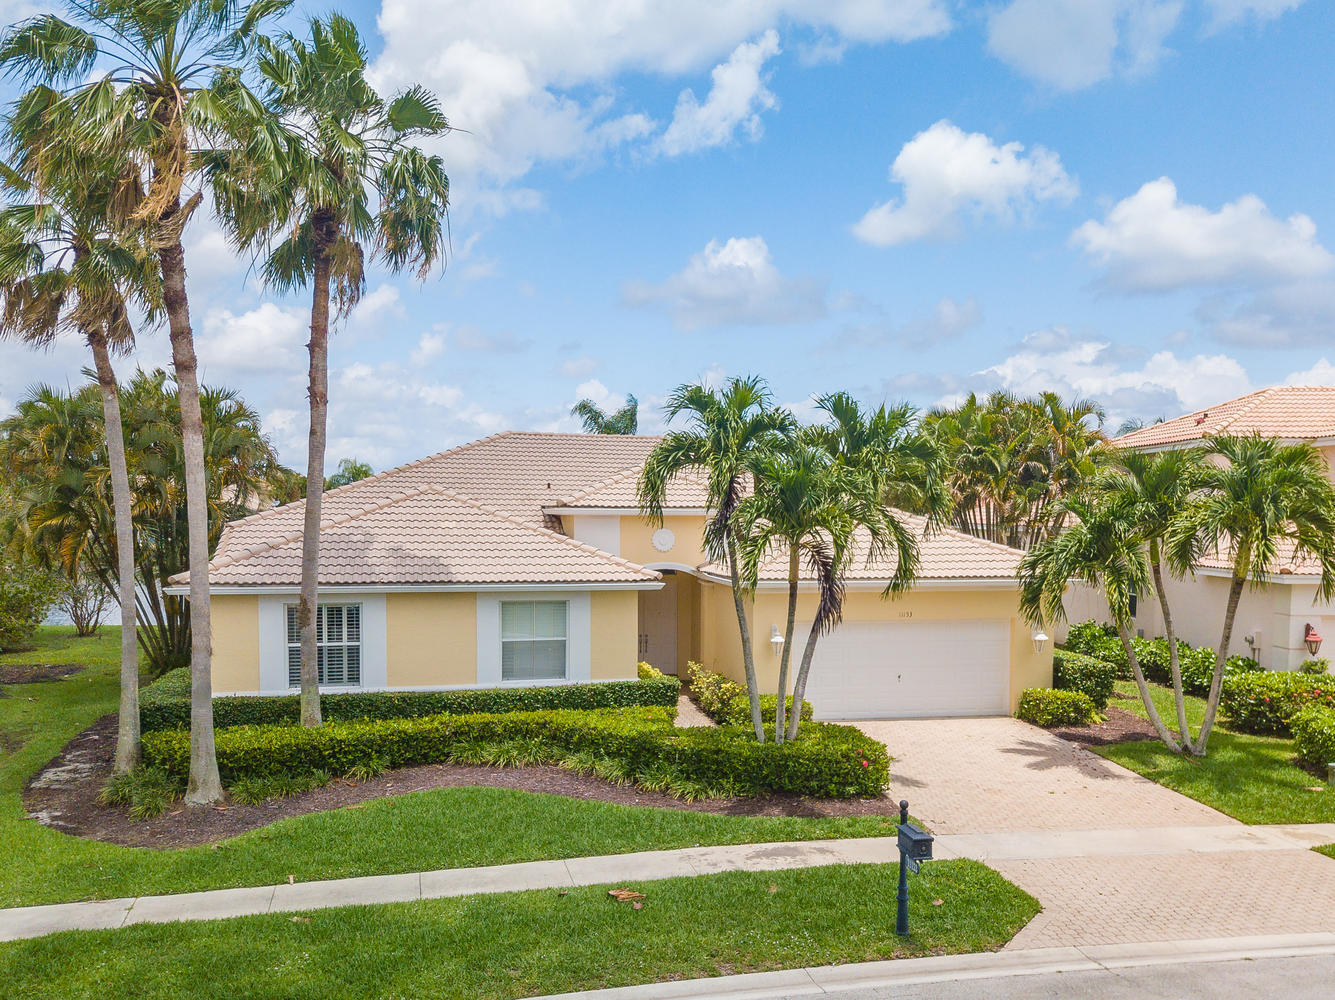 Home for sale in SHORES AT BOCA RATON PH 2, 3 AND 4 Boca Raton Florida